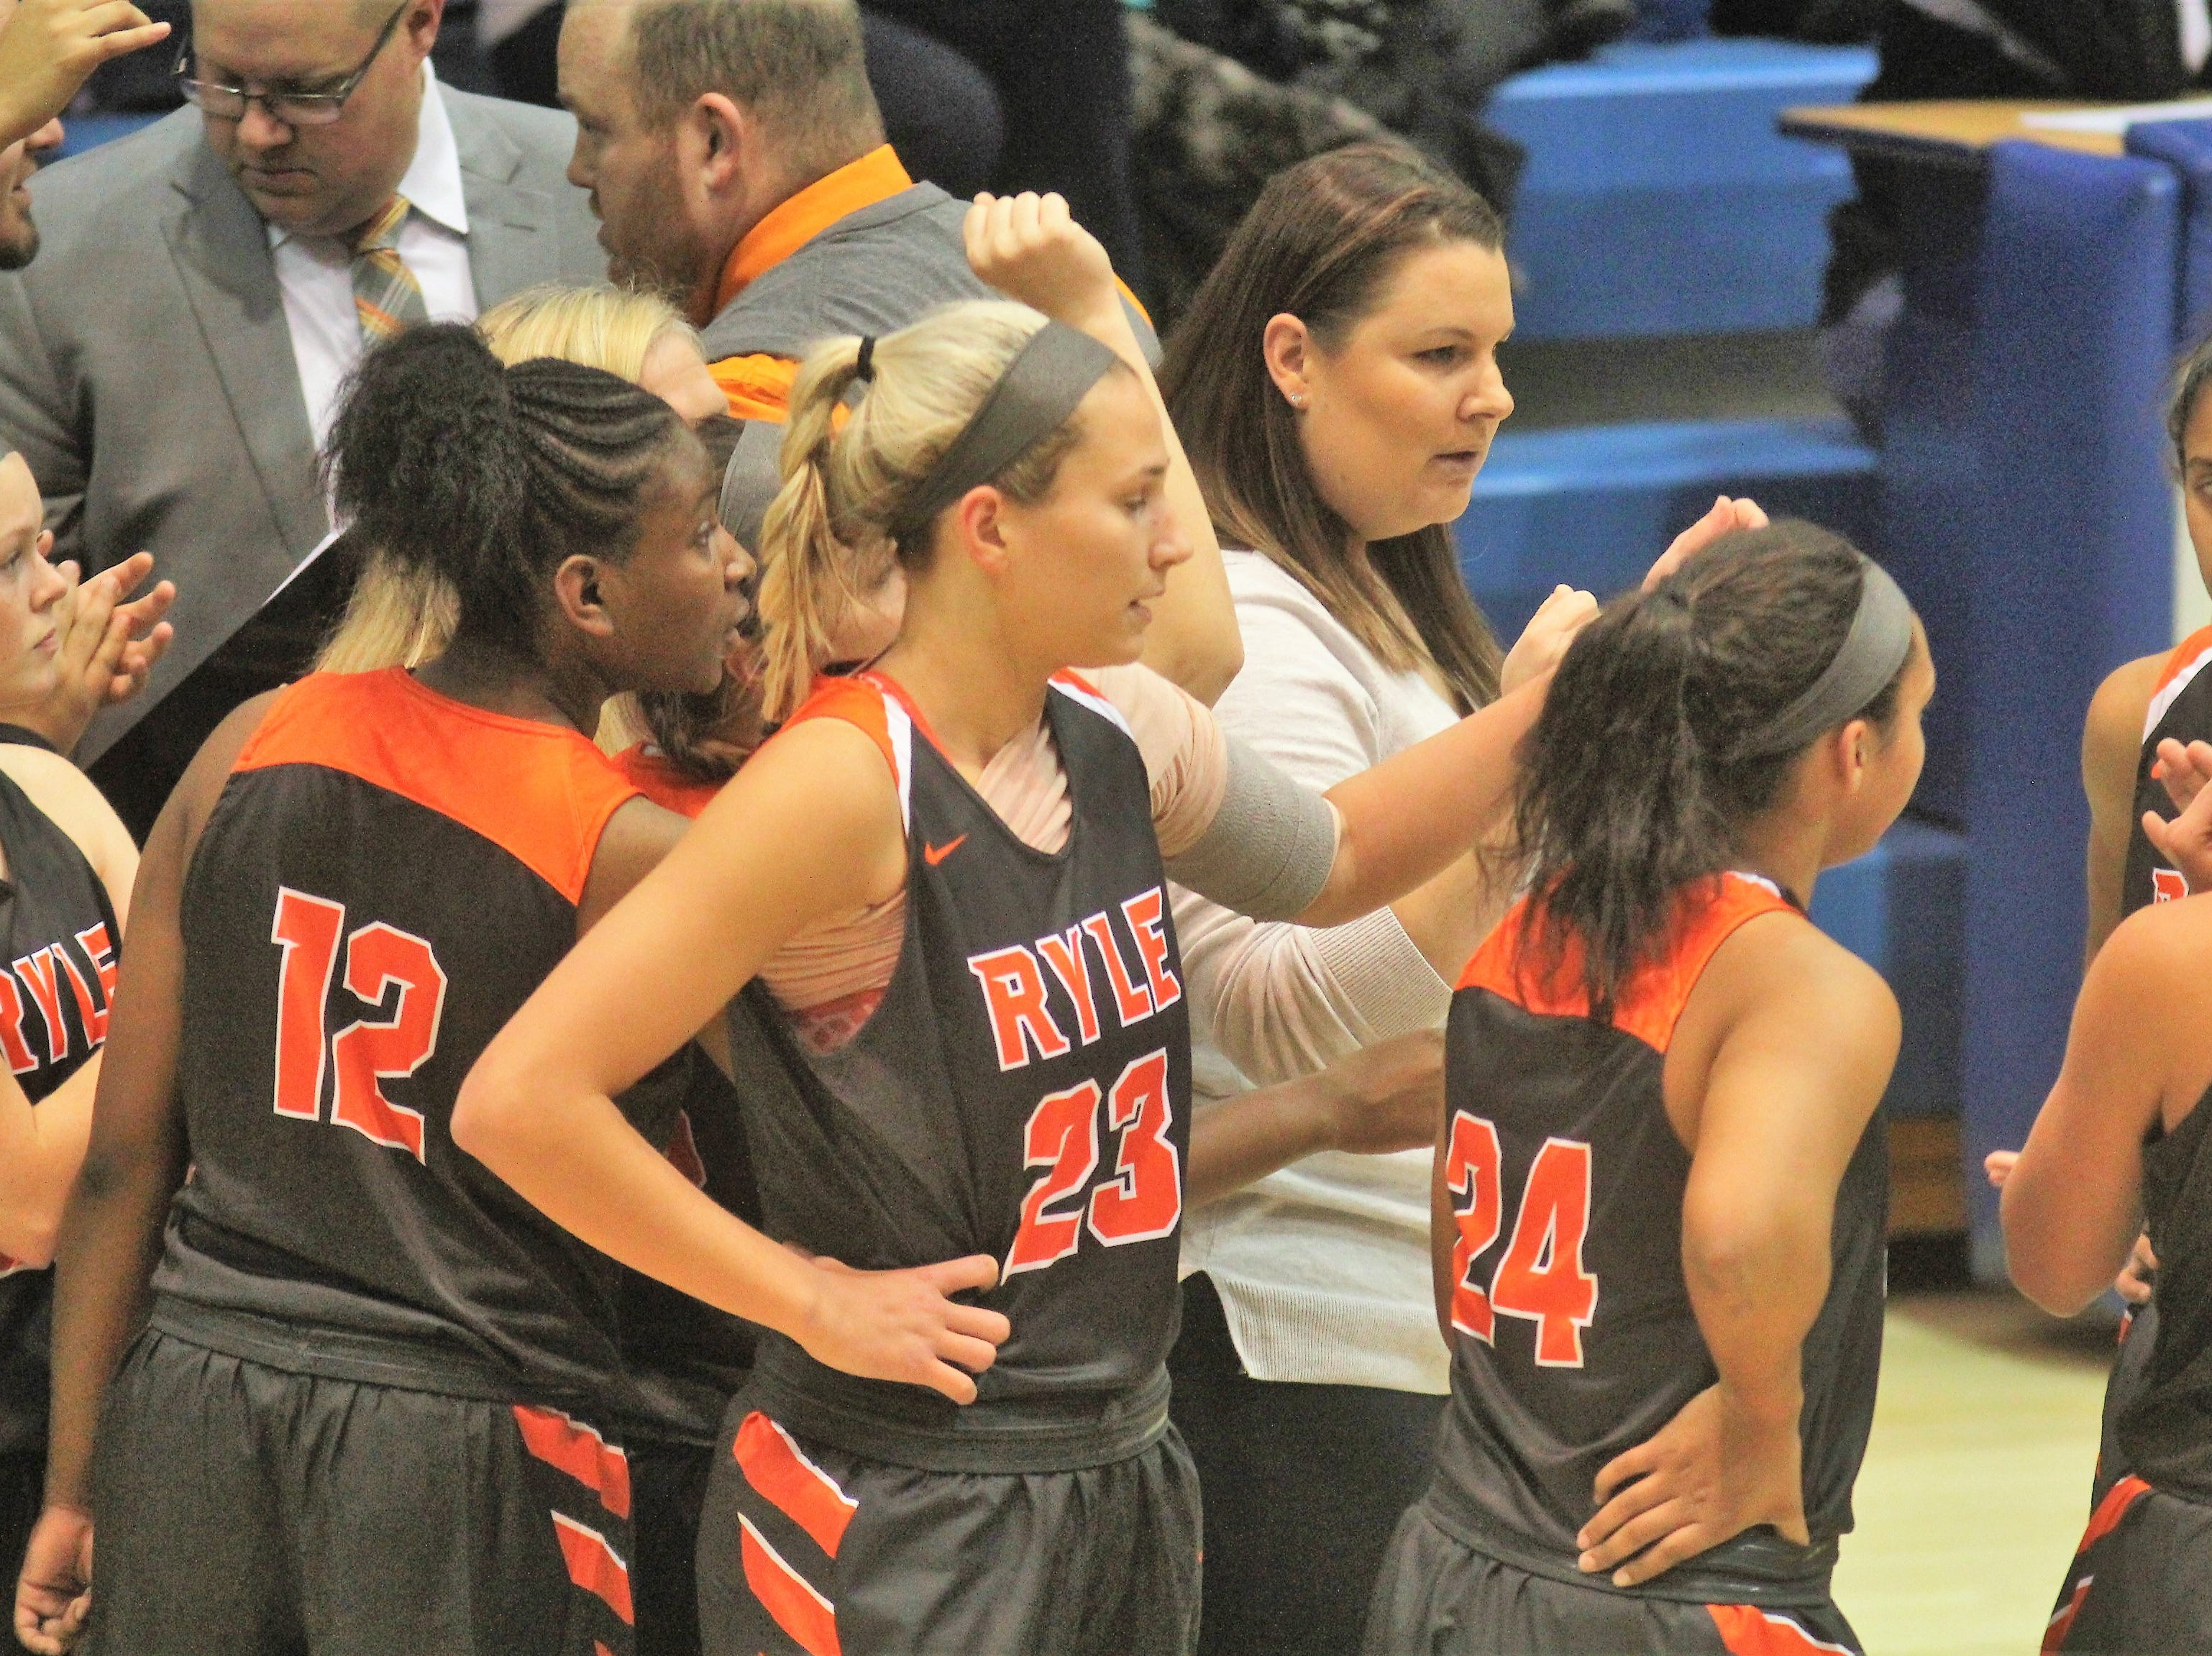 Ryle head coach Katie Haitz talks to her team as Ryle defeated Conner 60-49 in a girls basketball district game Dec. 7, 2018 at Conner High School, Hebron KY.